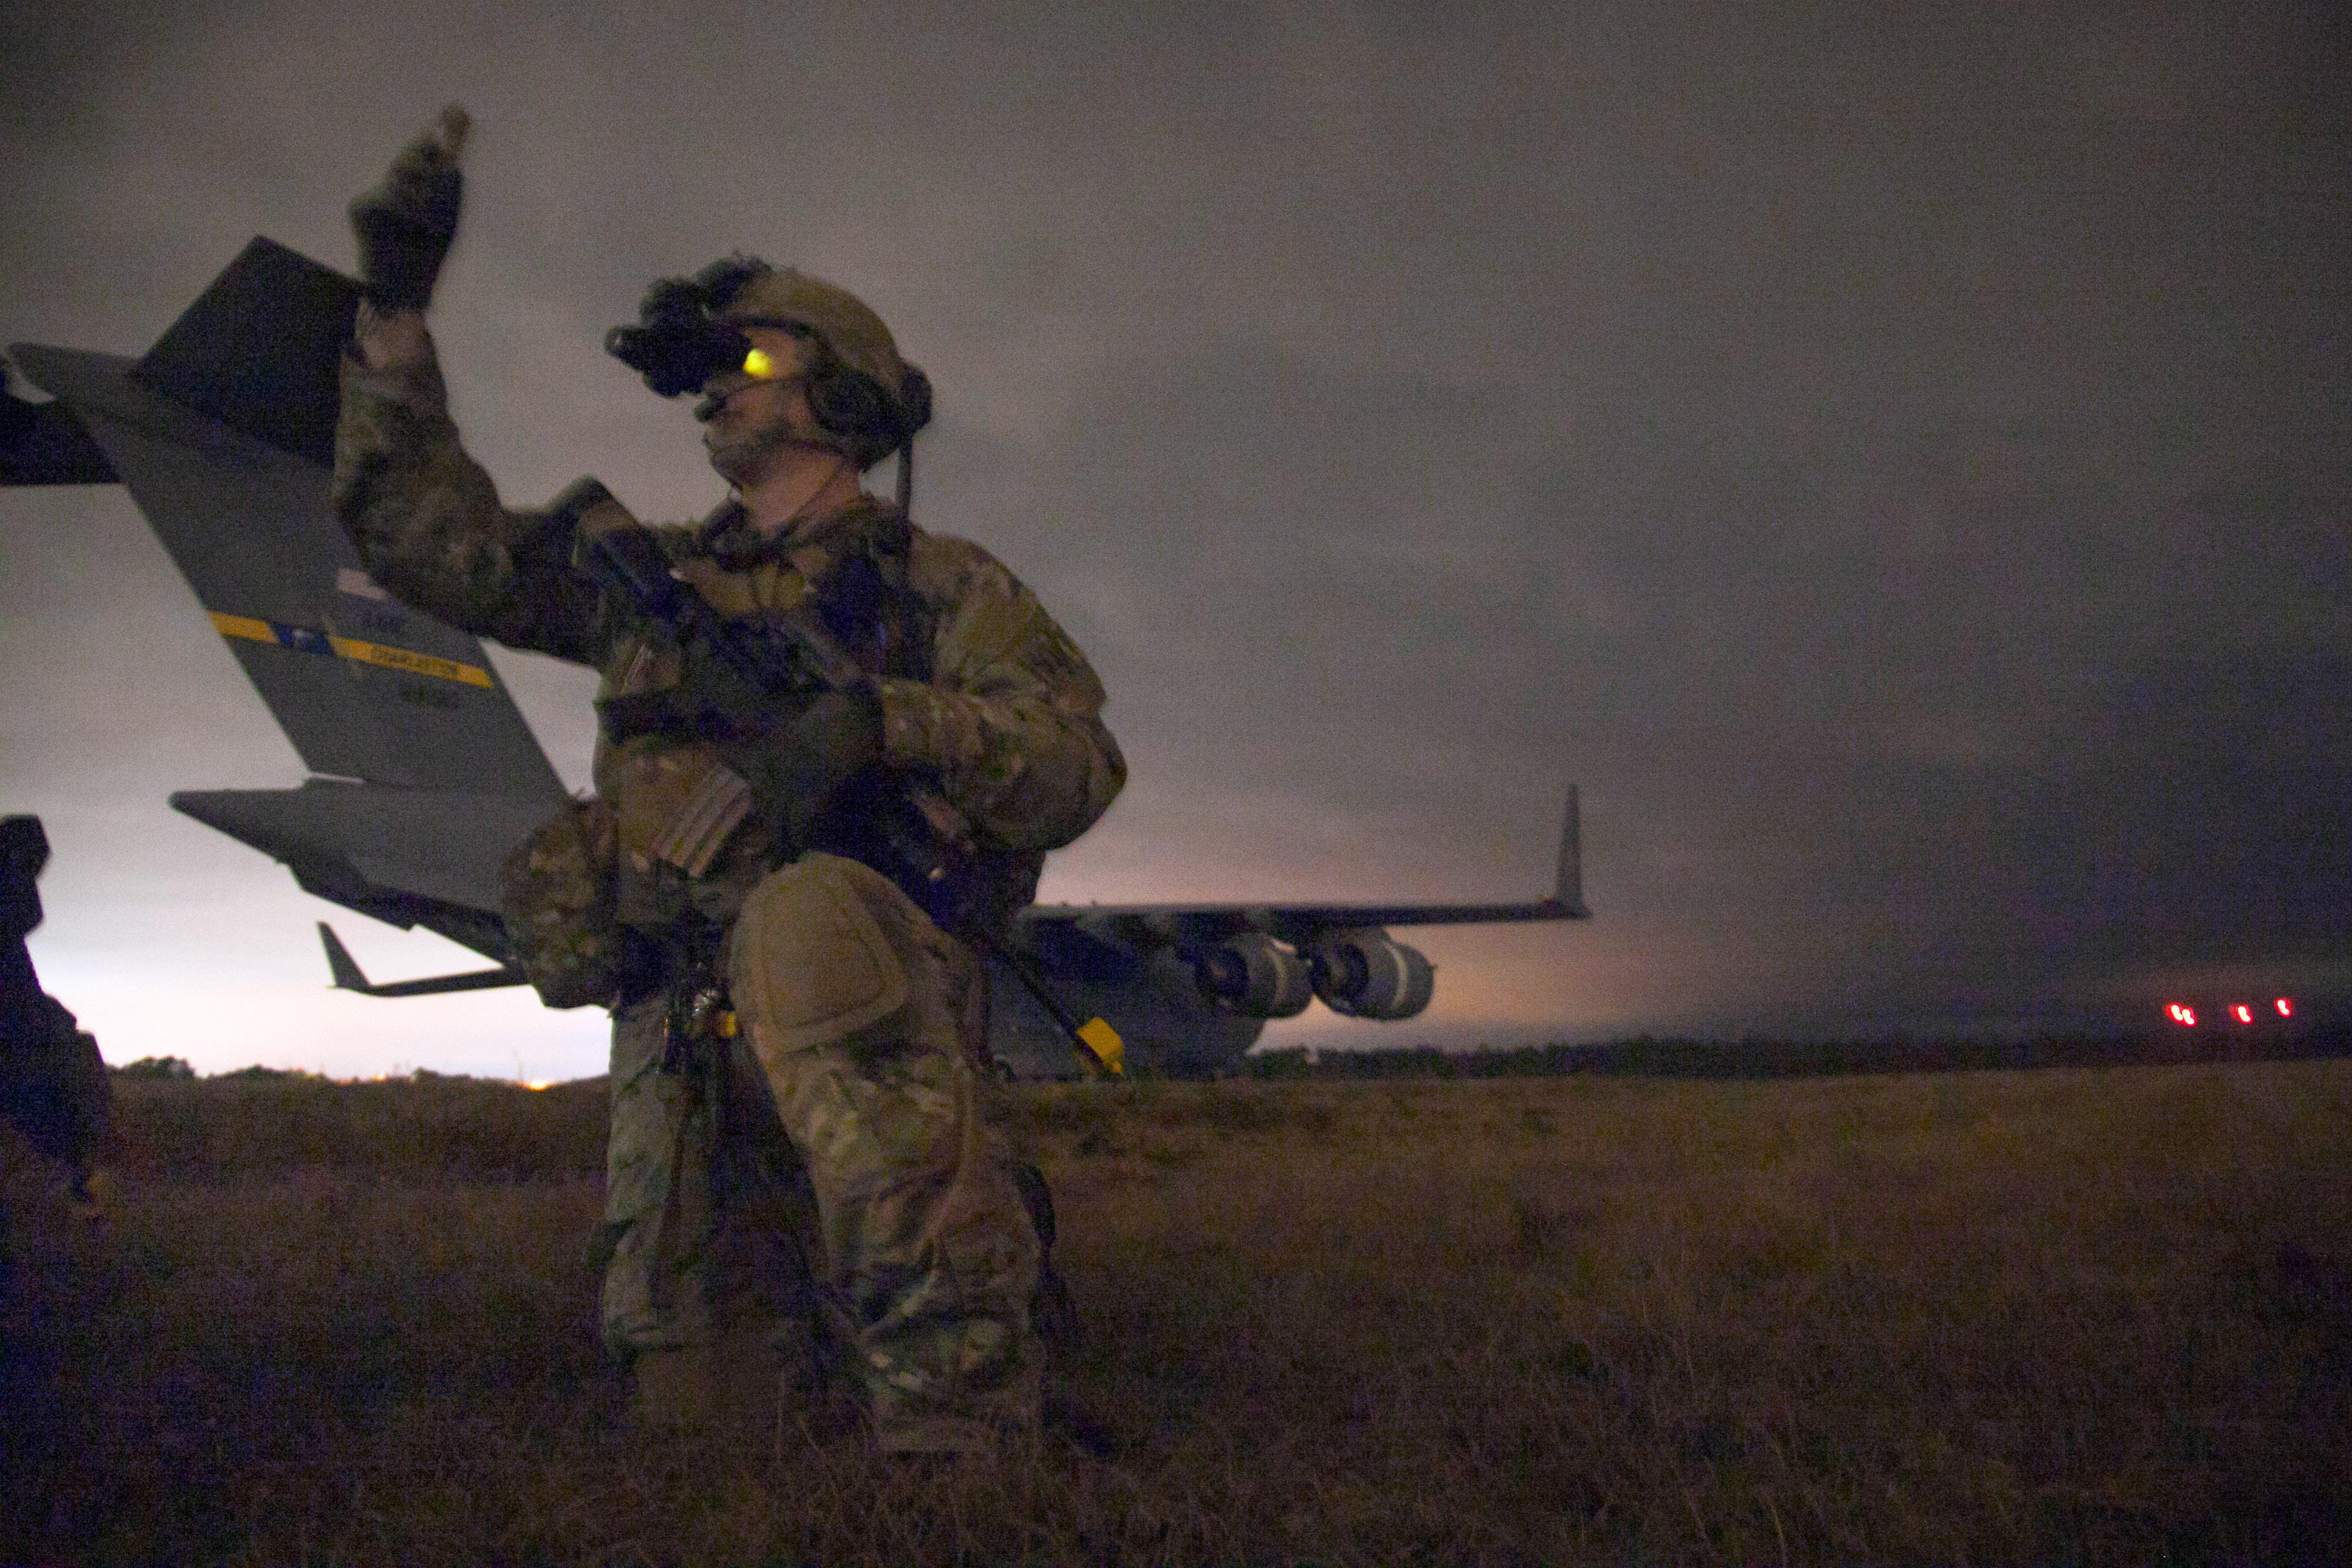 Airborne Operations Air Force